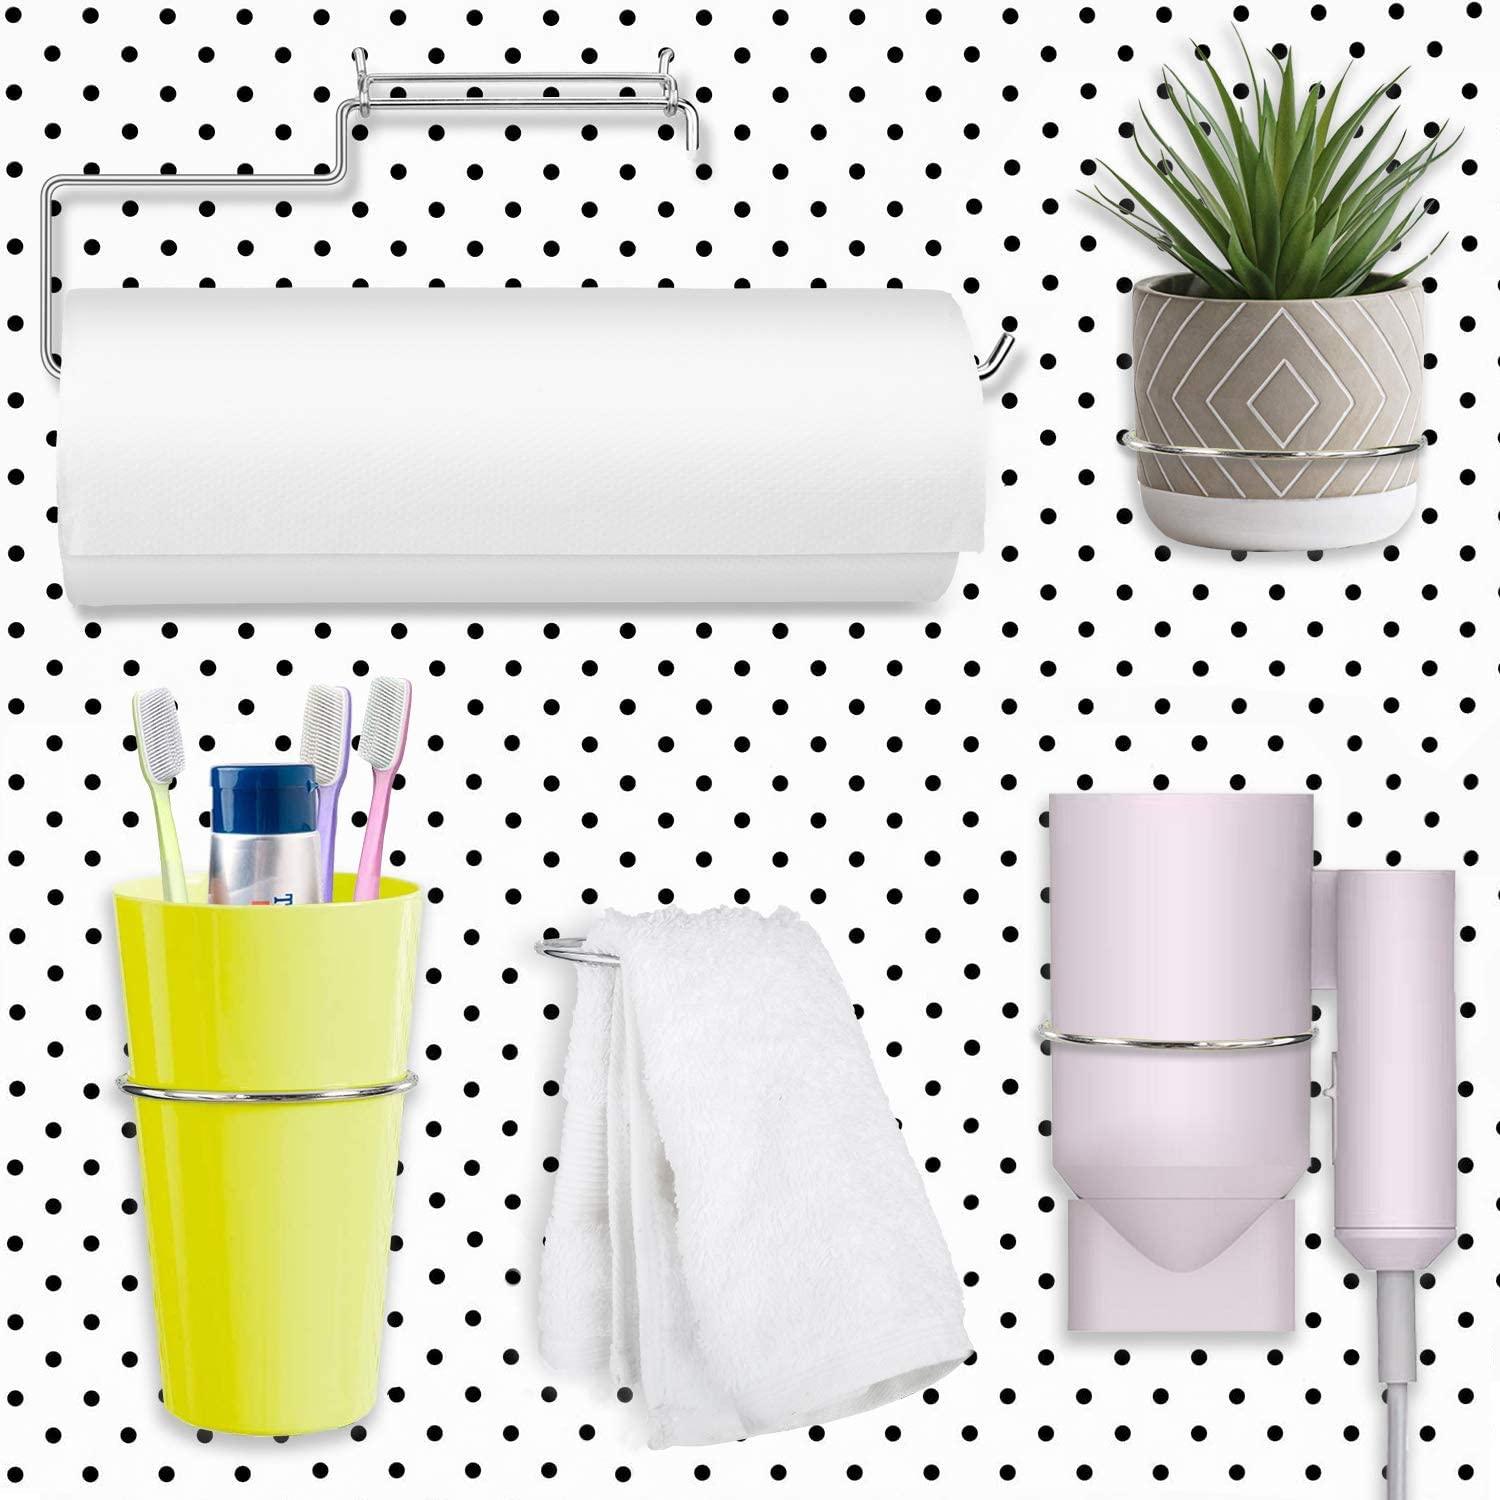 Pegboard Hooks Set Pegboard Paper Towel Holder, 4 Pieces Ring Style Pegboard Hooks Pegboard Organization Accessory Hook for Workshop Garage Kitchen Laundry Room Bathroom